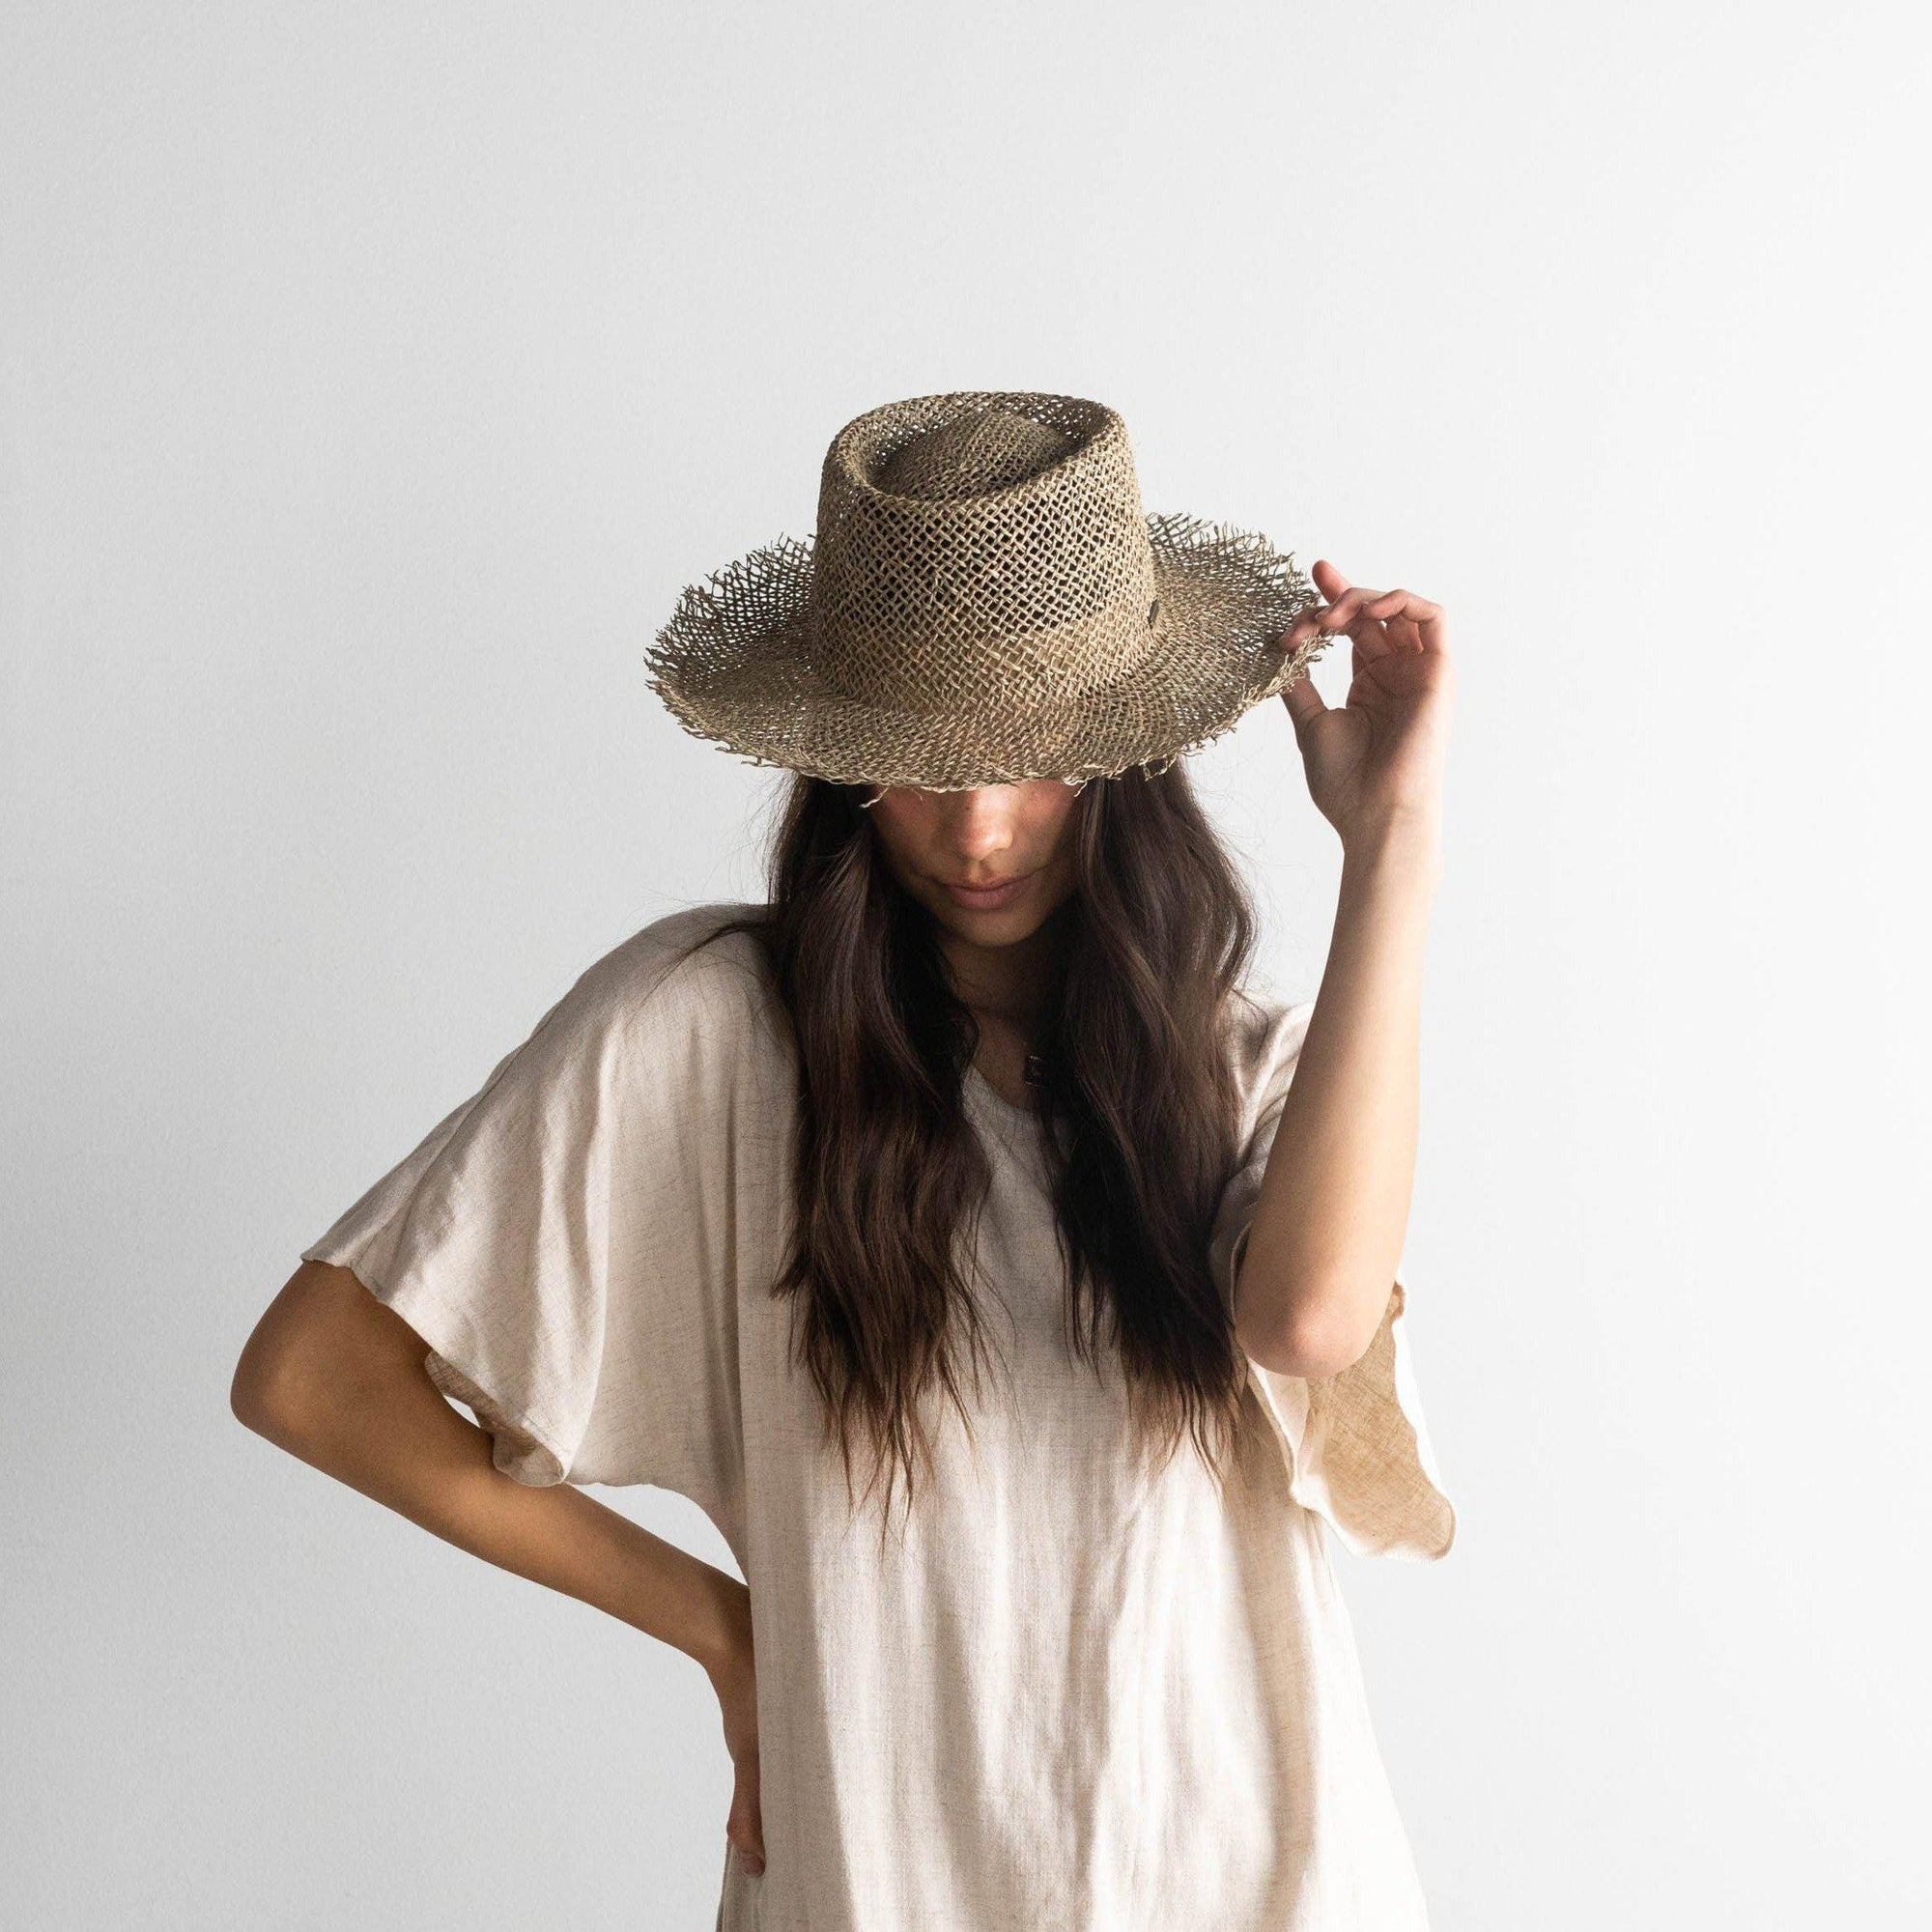 GIGI PIP Hats for Women- Willa - Woven Seagrass Gambler-Straw Hats